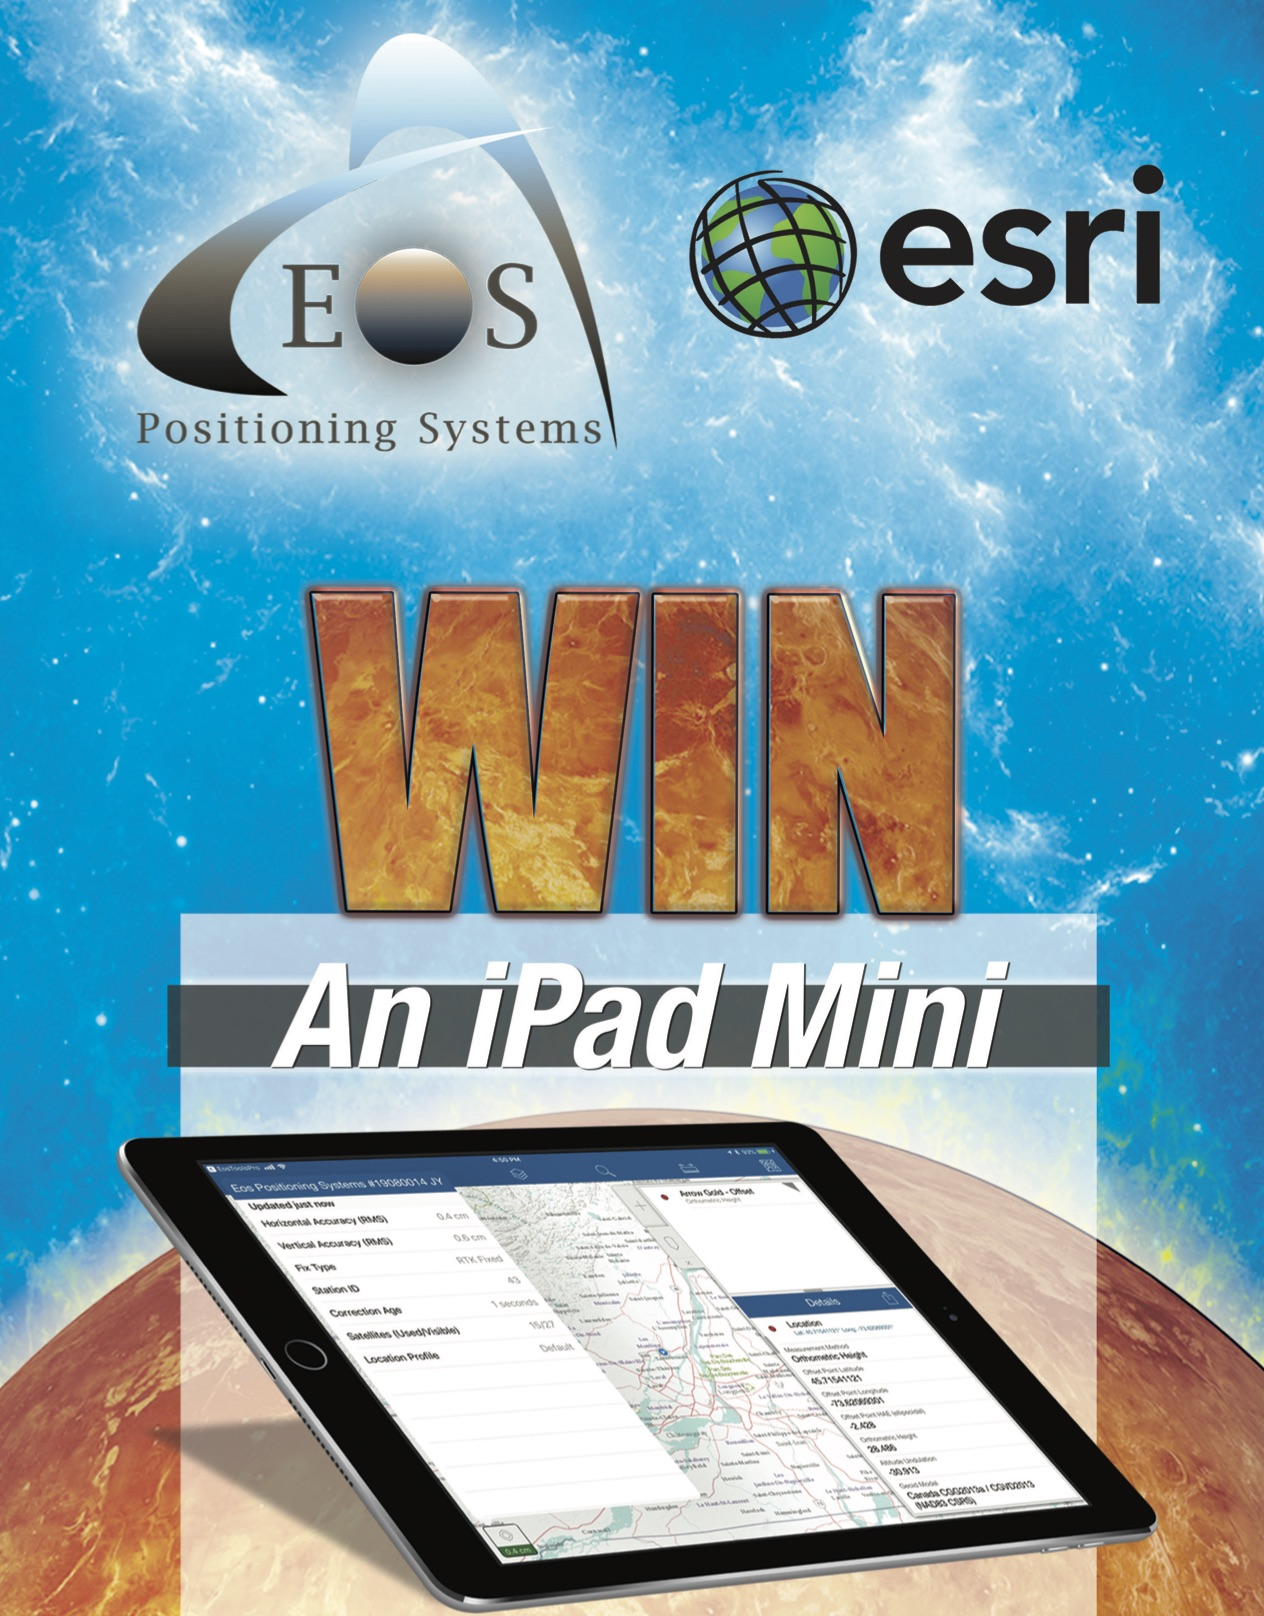 Win an iPad from Eos Positioning Systems